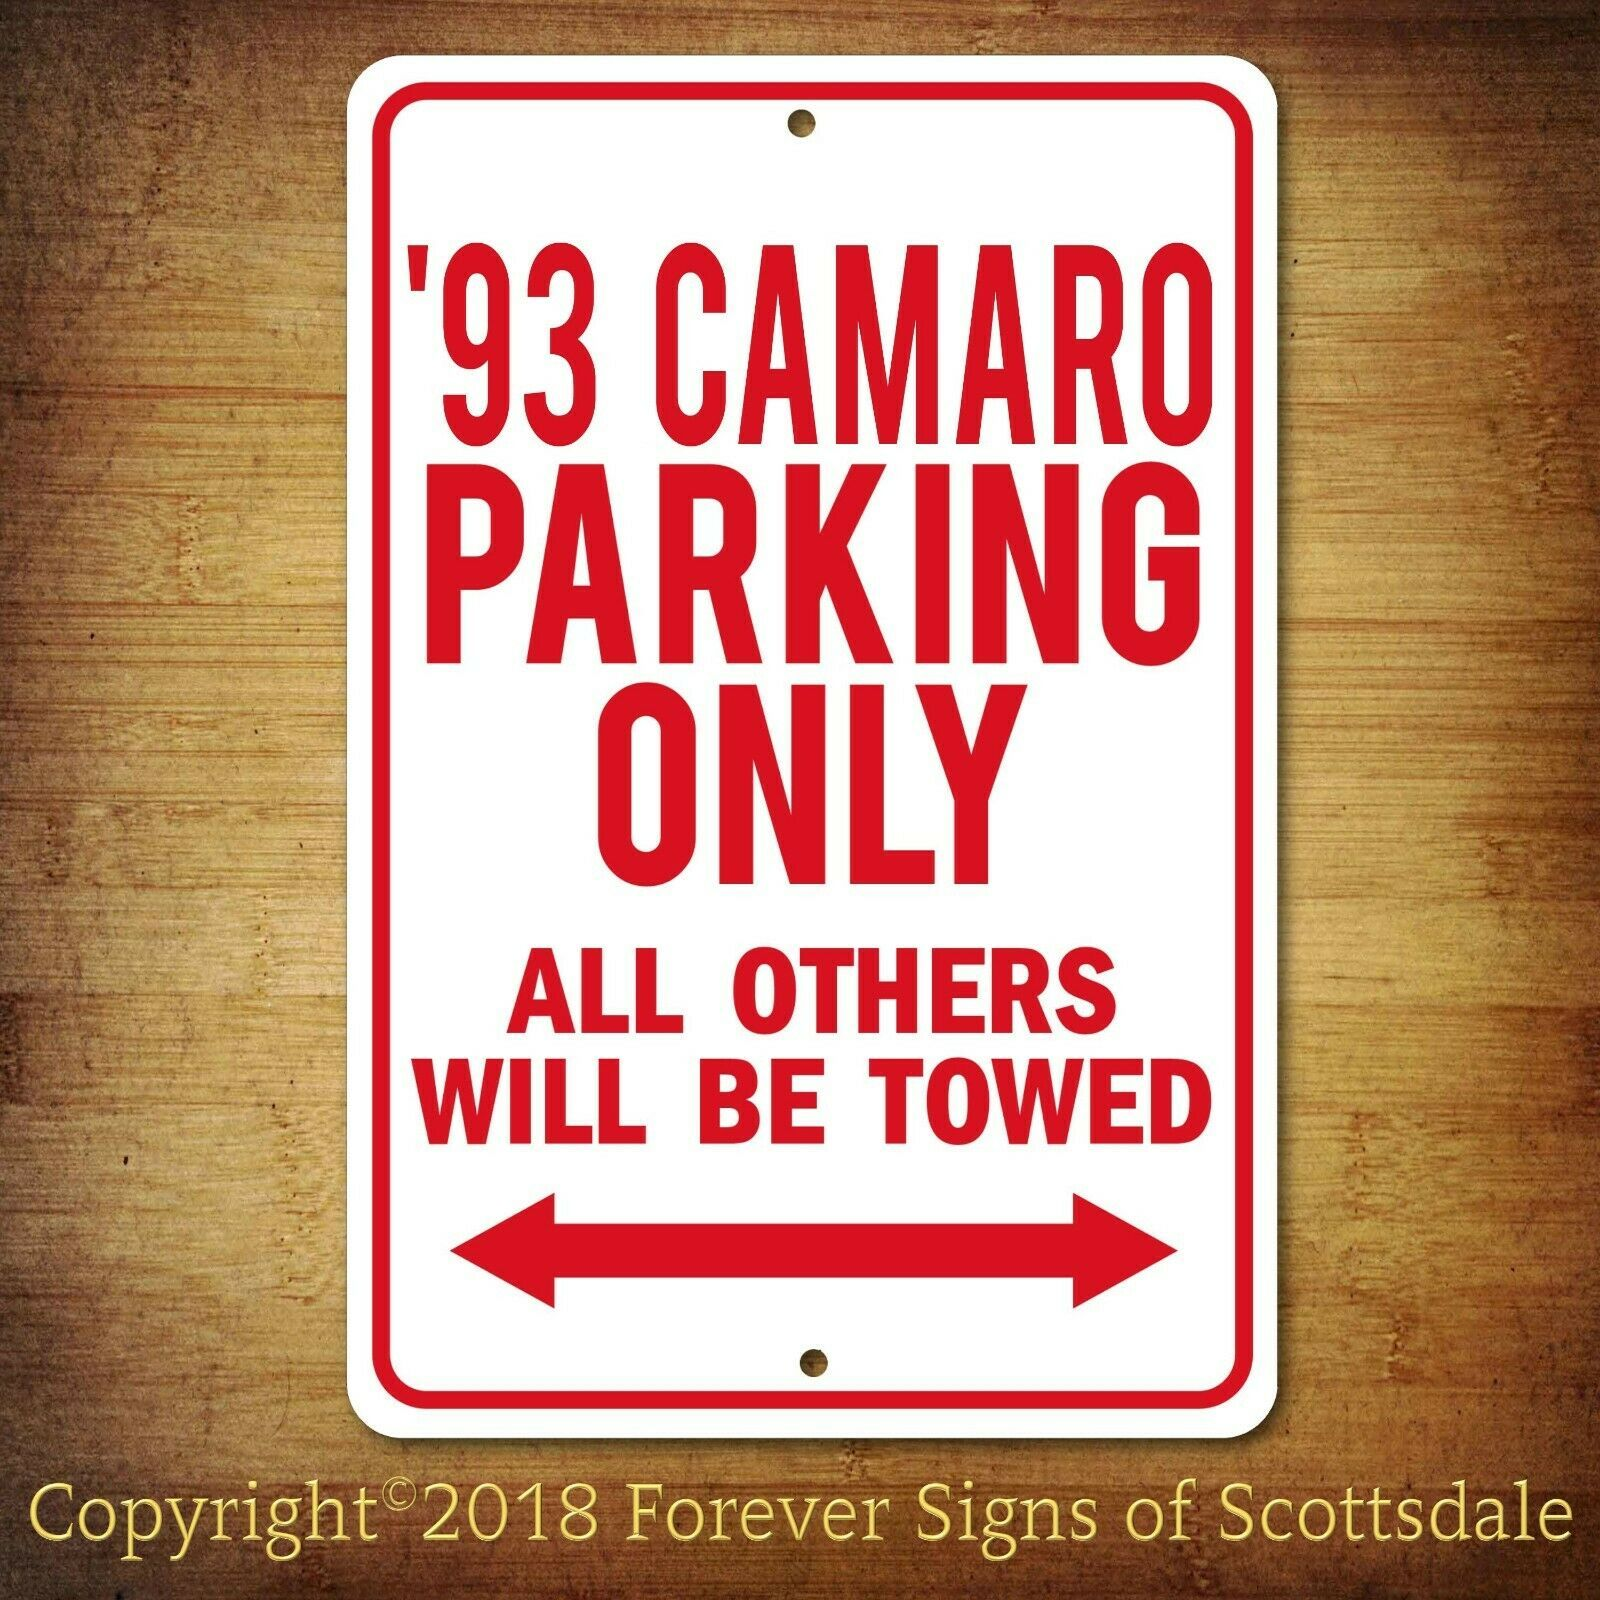 Primary image for 1993 Chevrolet Camaro Parking Only Security Aluminum Sign